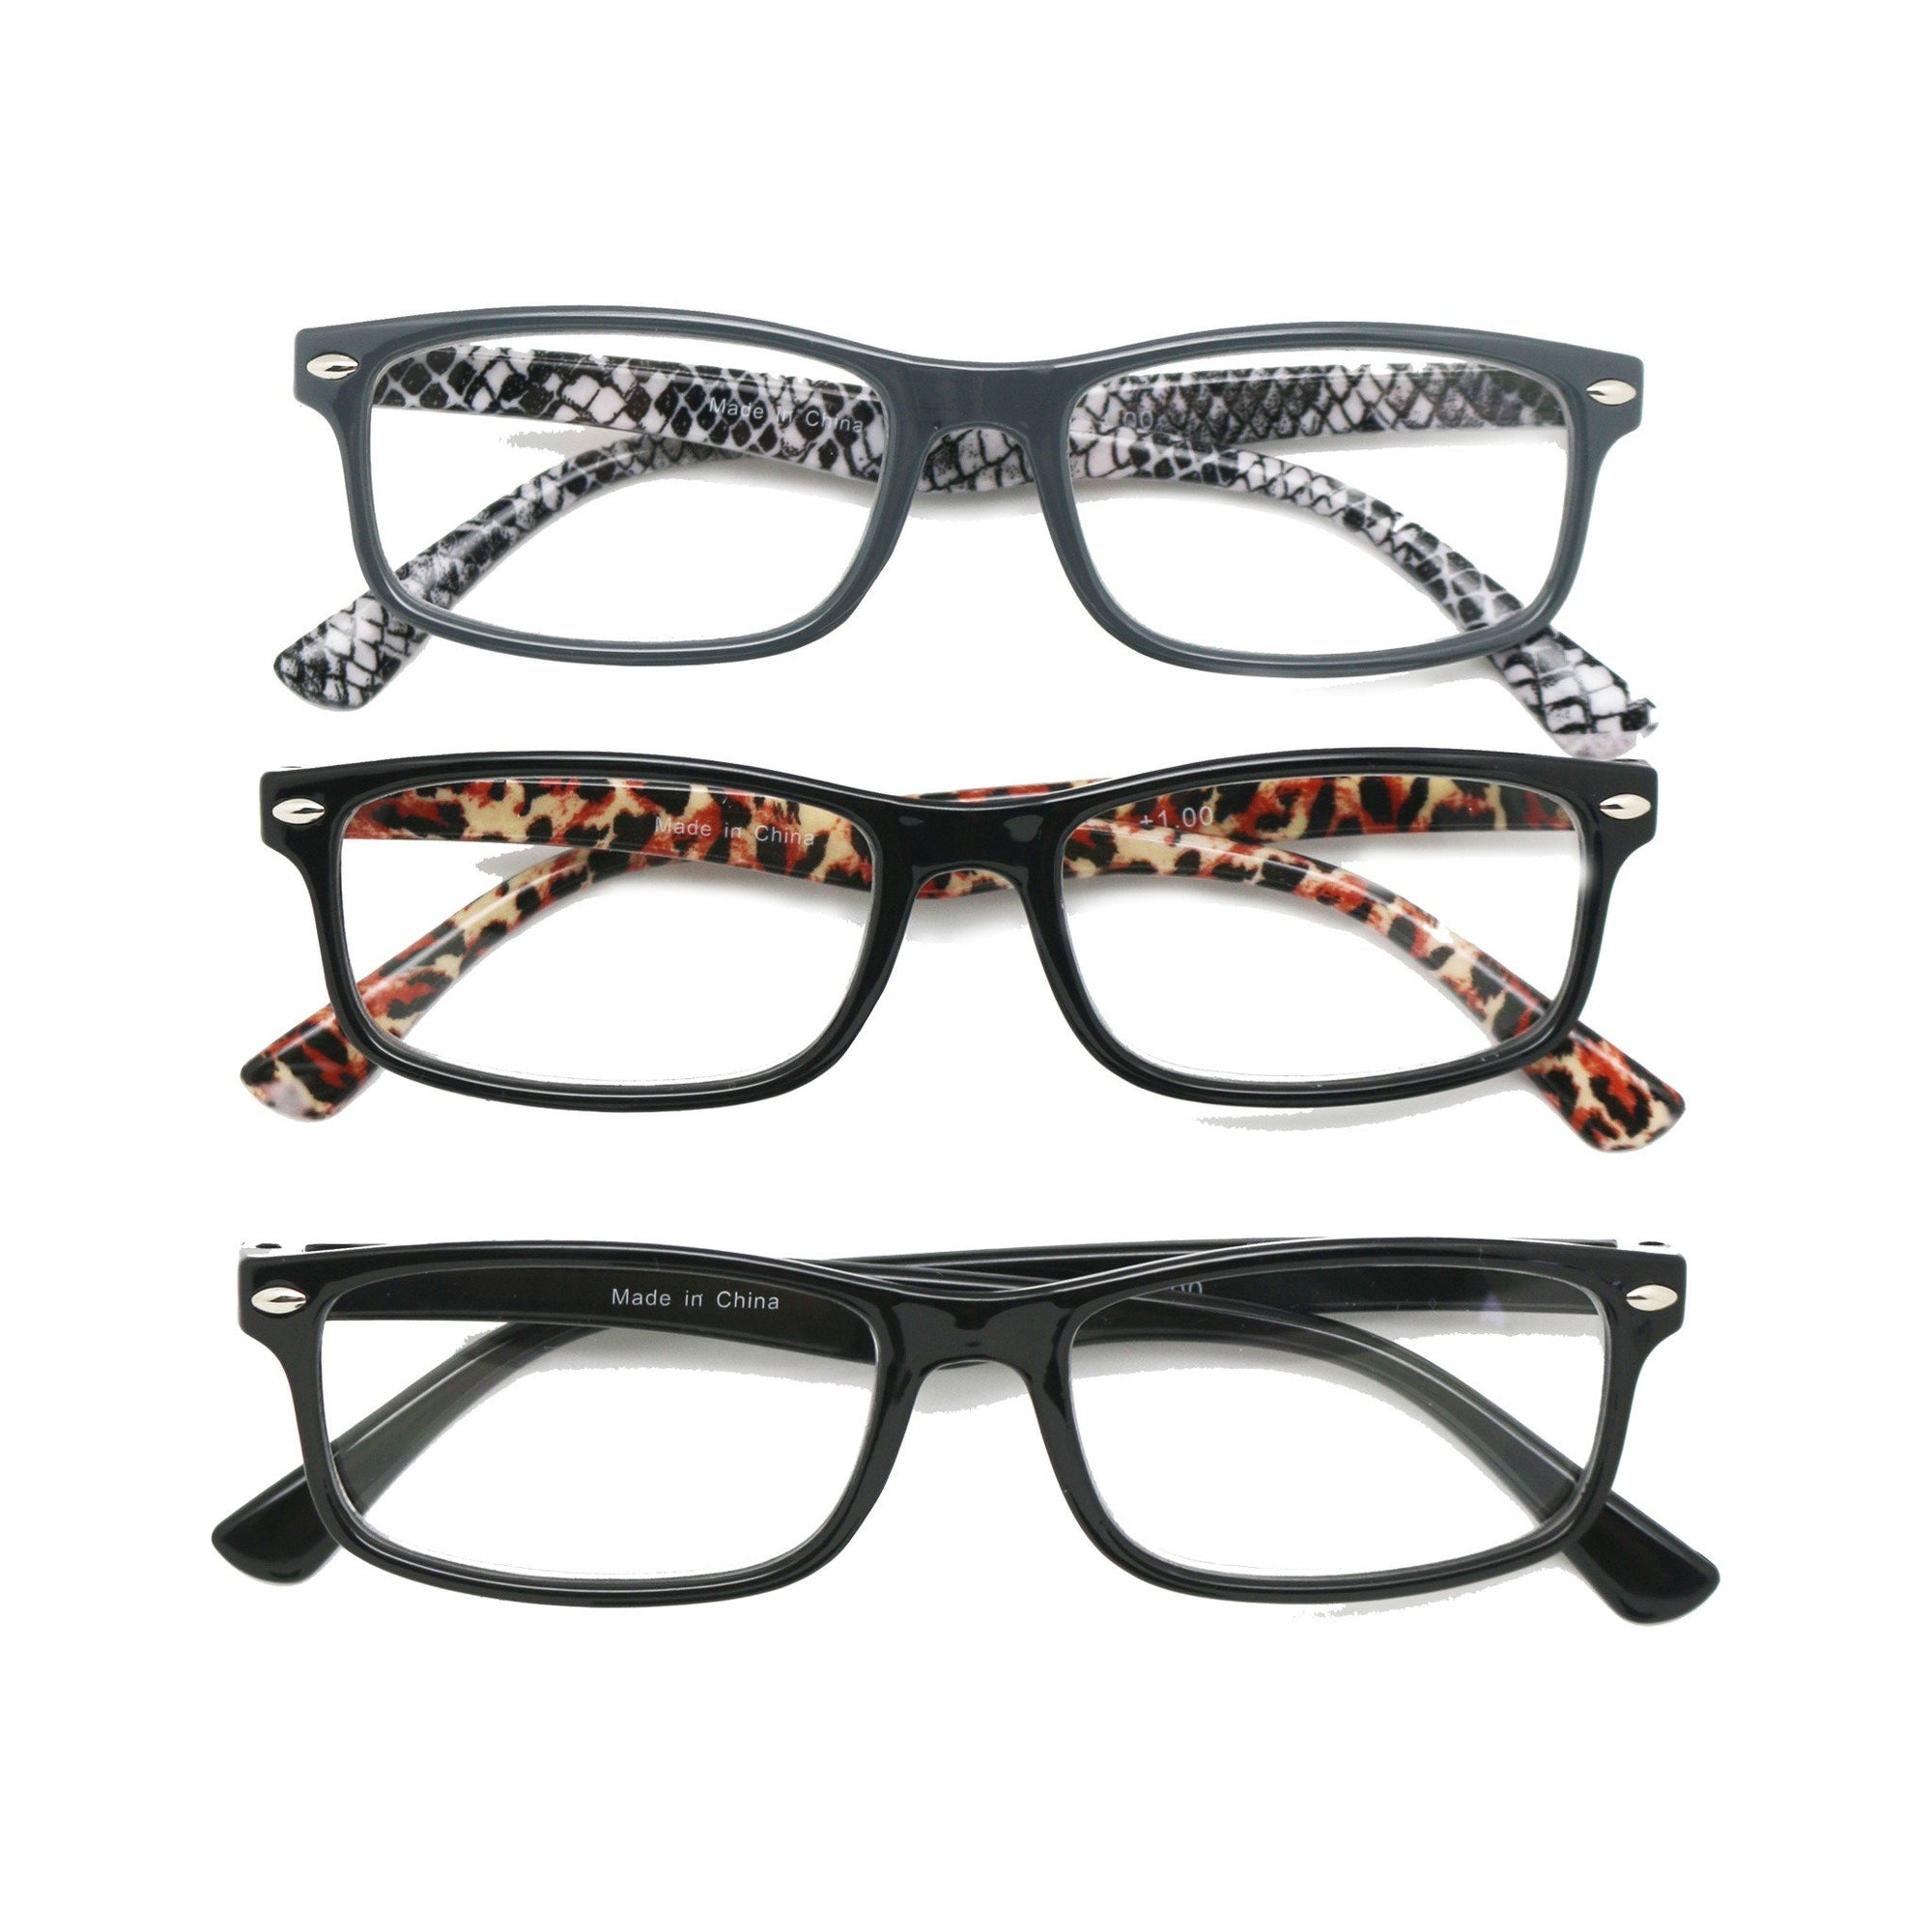 Casa Womens Reading Glasses +3.0 Magnification 3pk